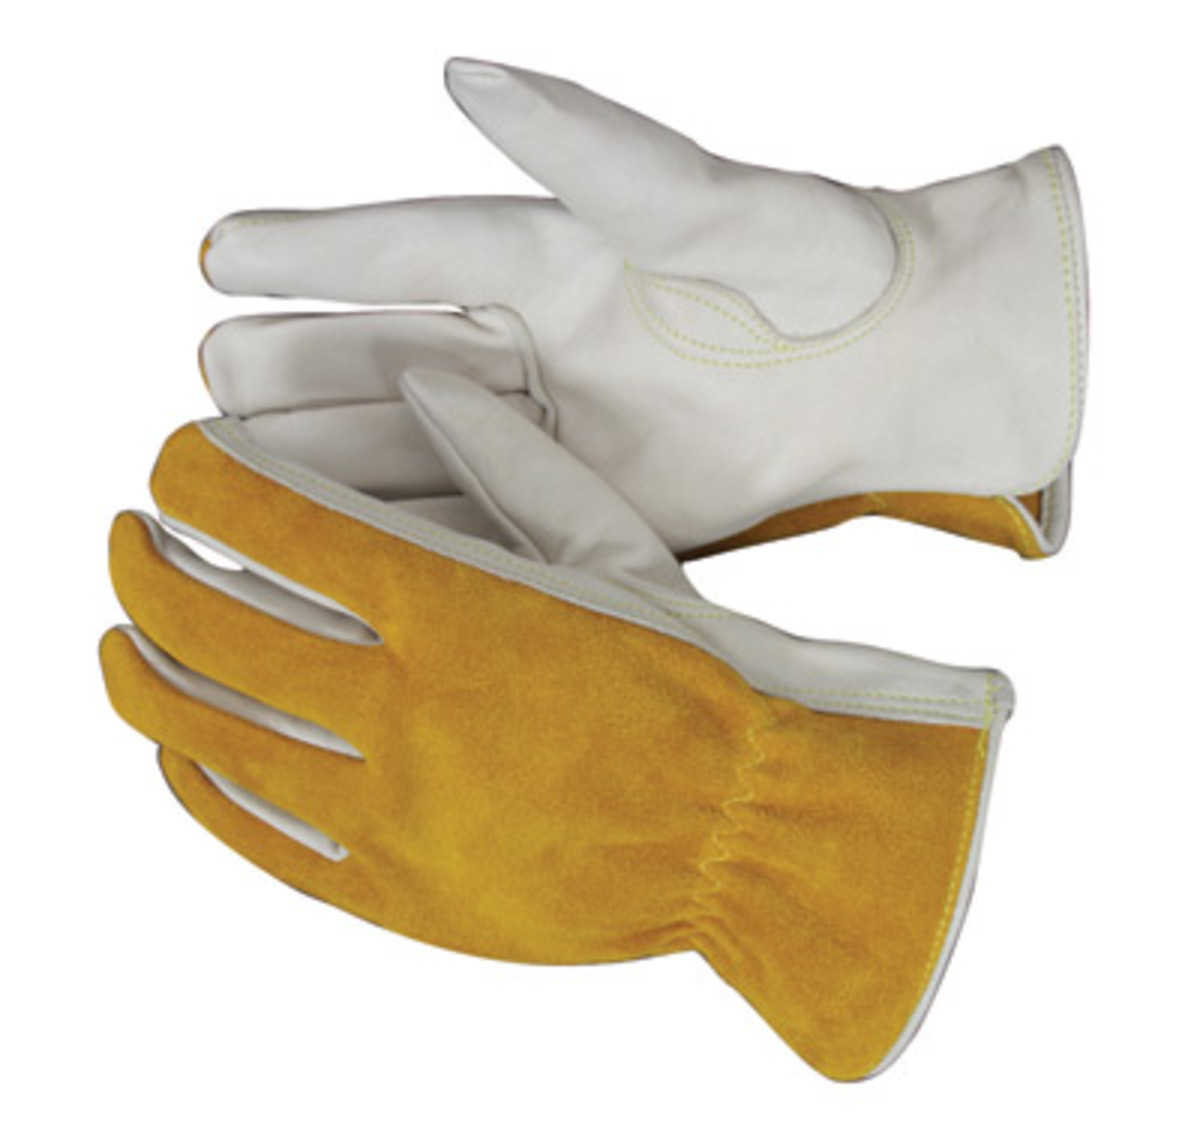 Driving gloves unlined - Radnor Medium Premium Grain Split Back Cowhide Unlined Drivers Gloves With Keystone Thumb And Shirred